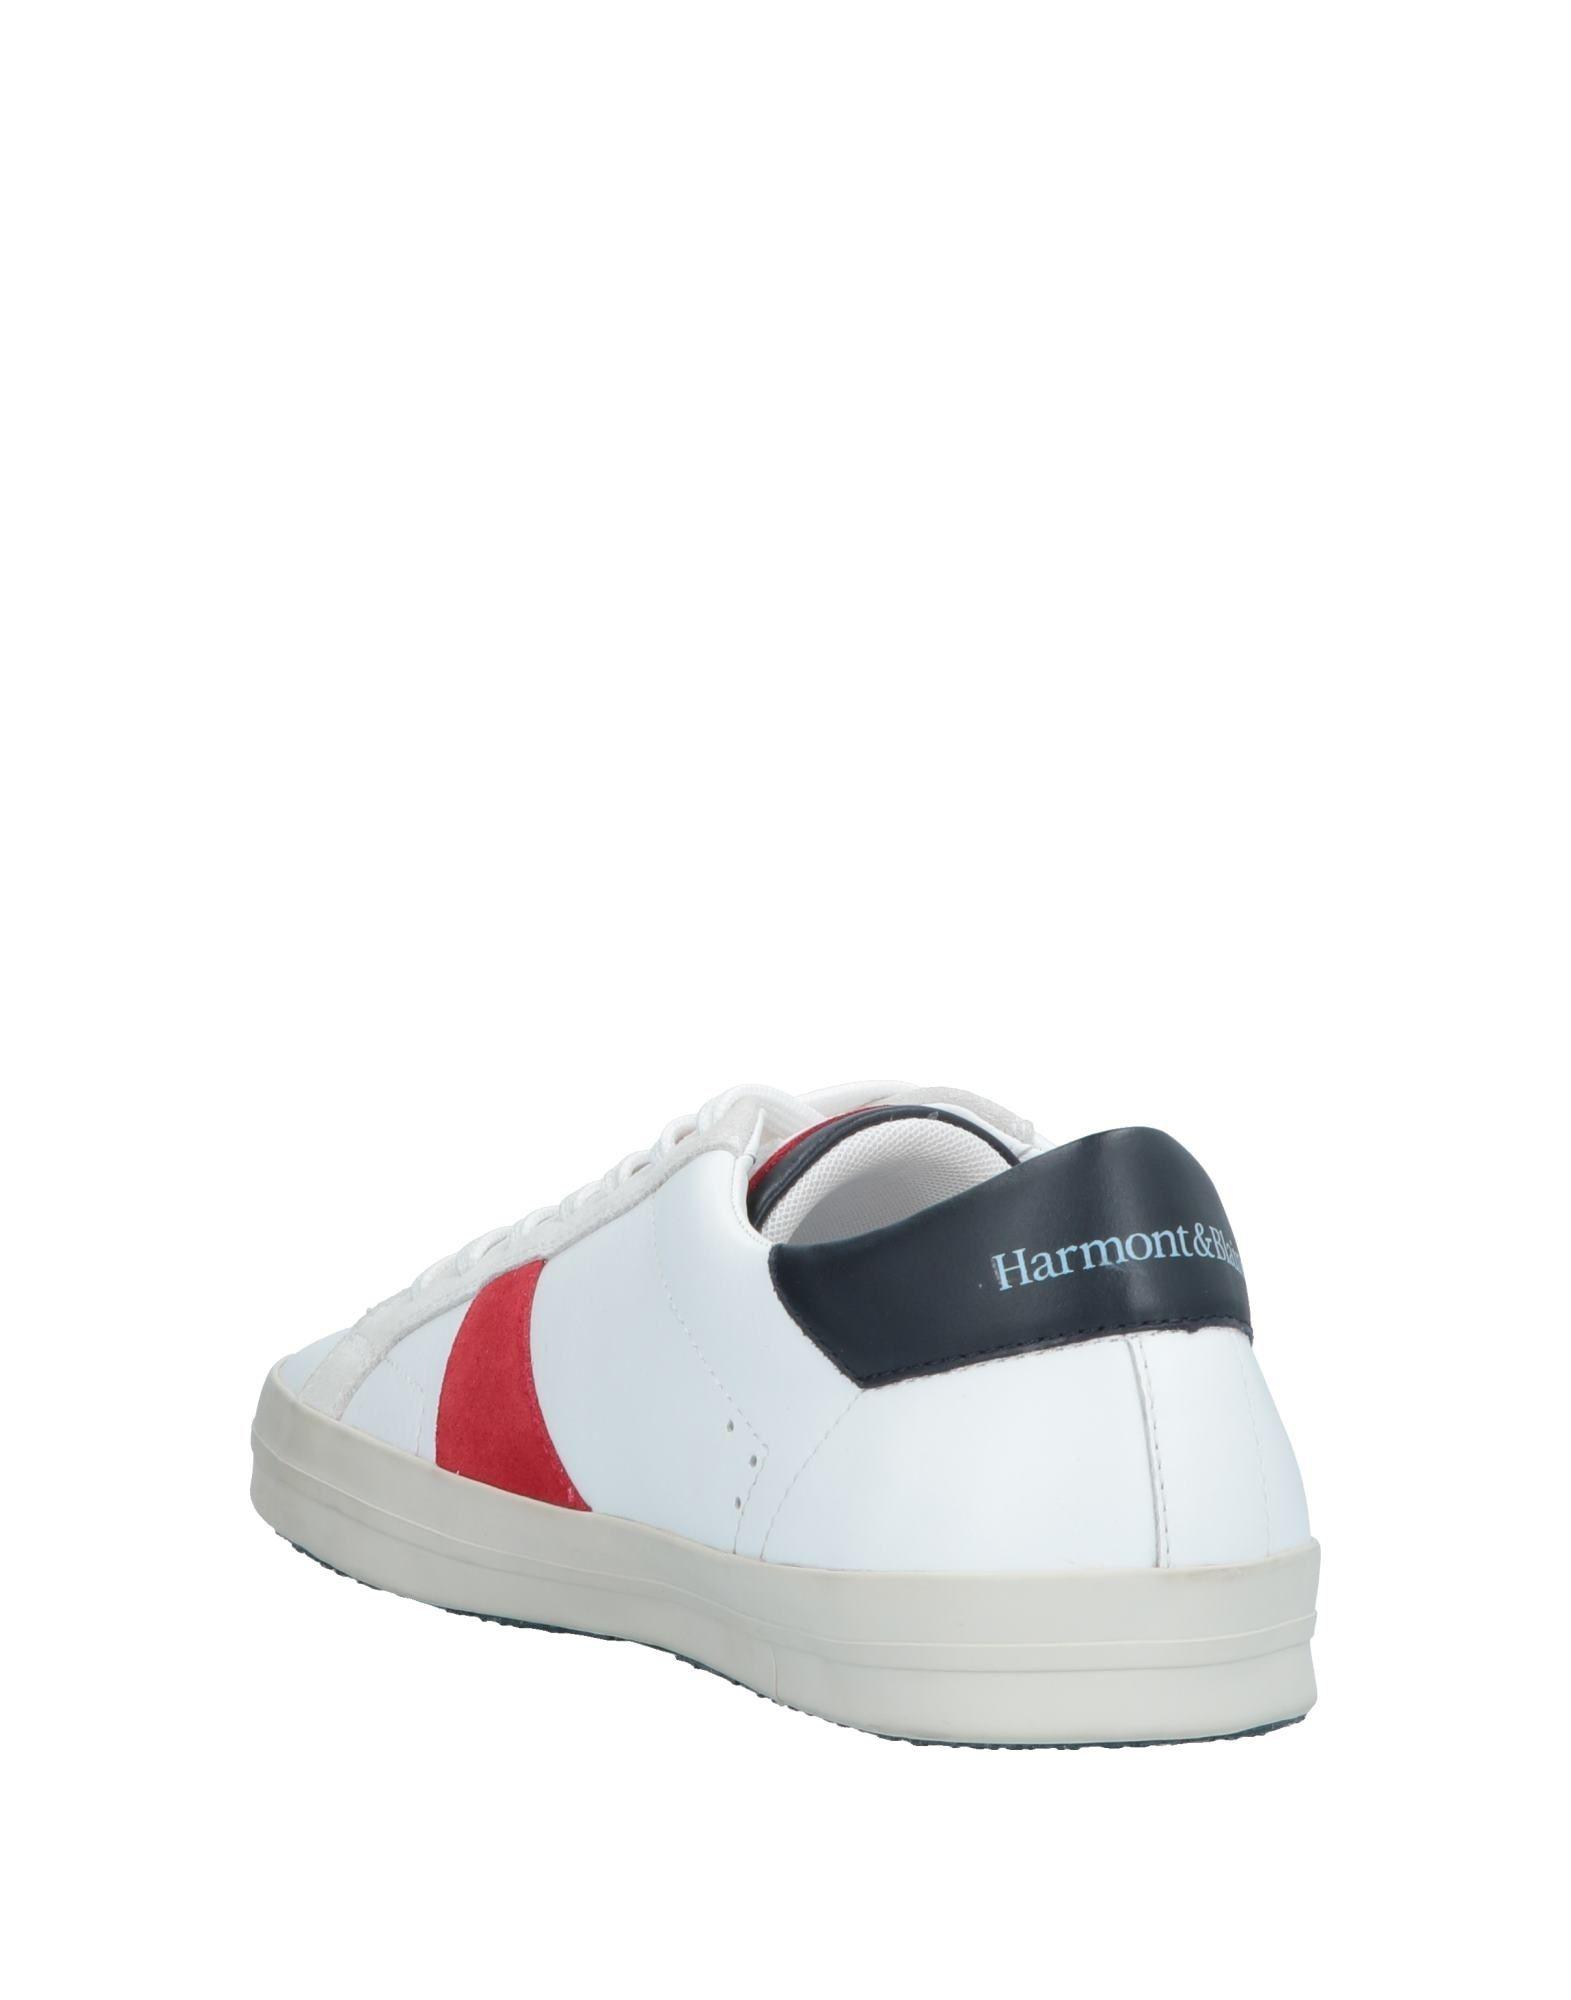 new concept e8935 ac153 harmontblaine-White-Low-tops-Sneakers.jpeg